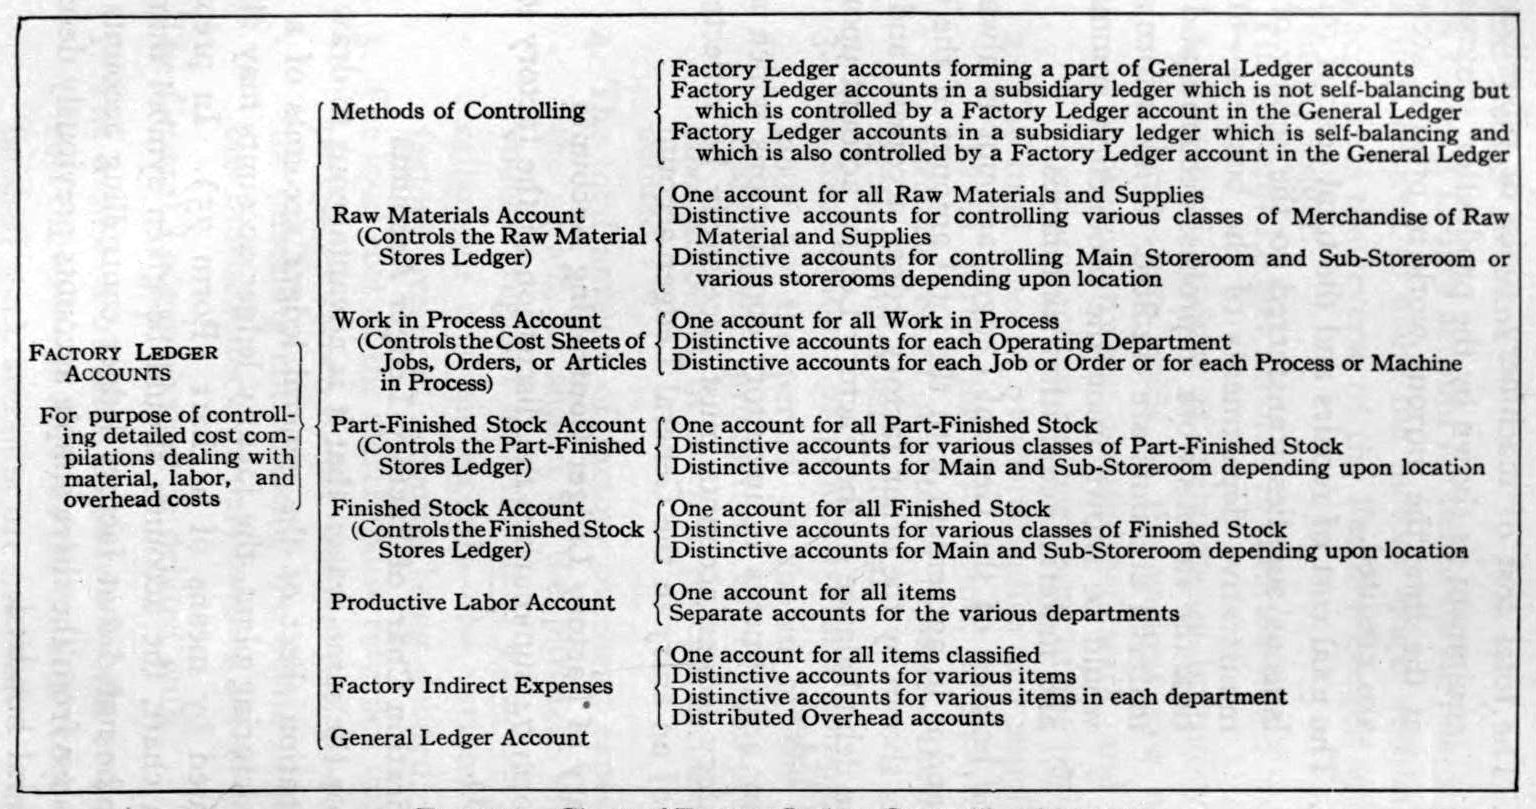 Microsoft Powerpoint Organizational Chart: Chart of Factory Ledger Controlling Accounts 1919.jpg ,Chart